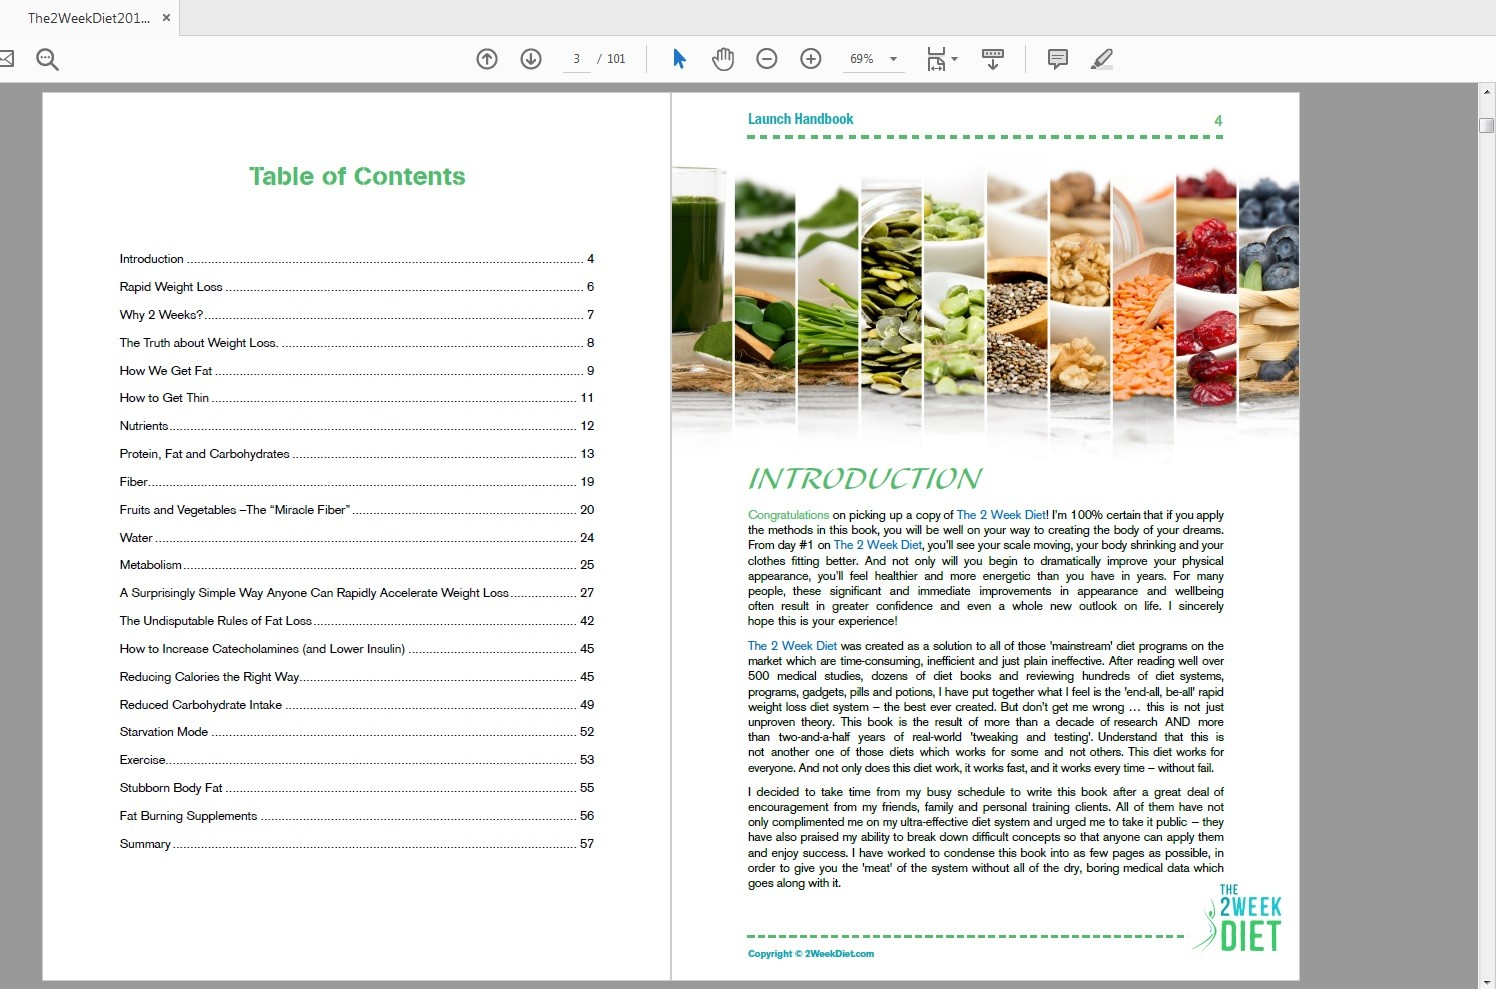 The 2 Week Diet System Table of Contents